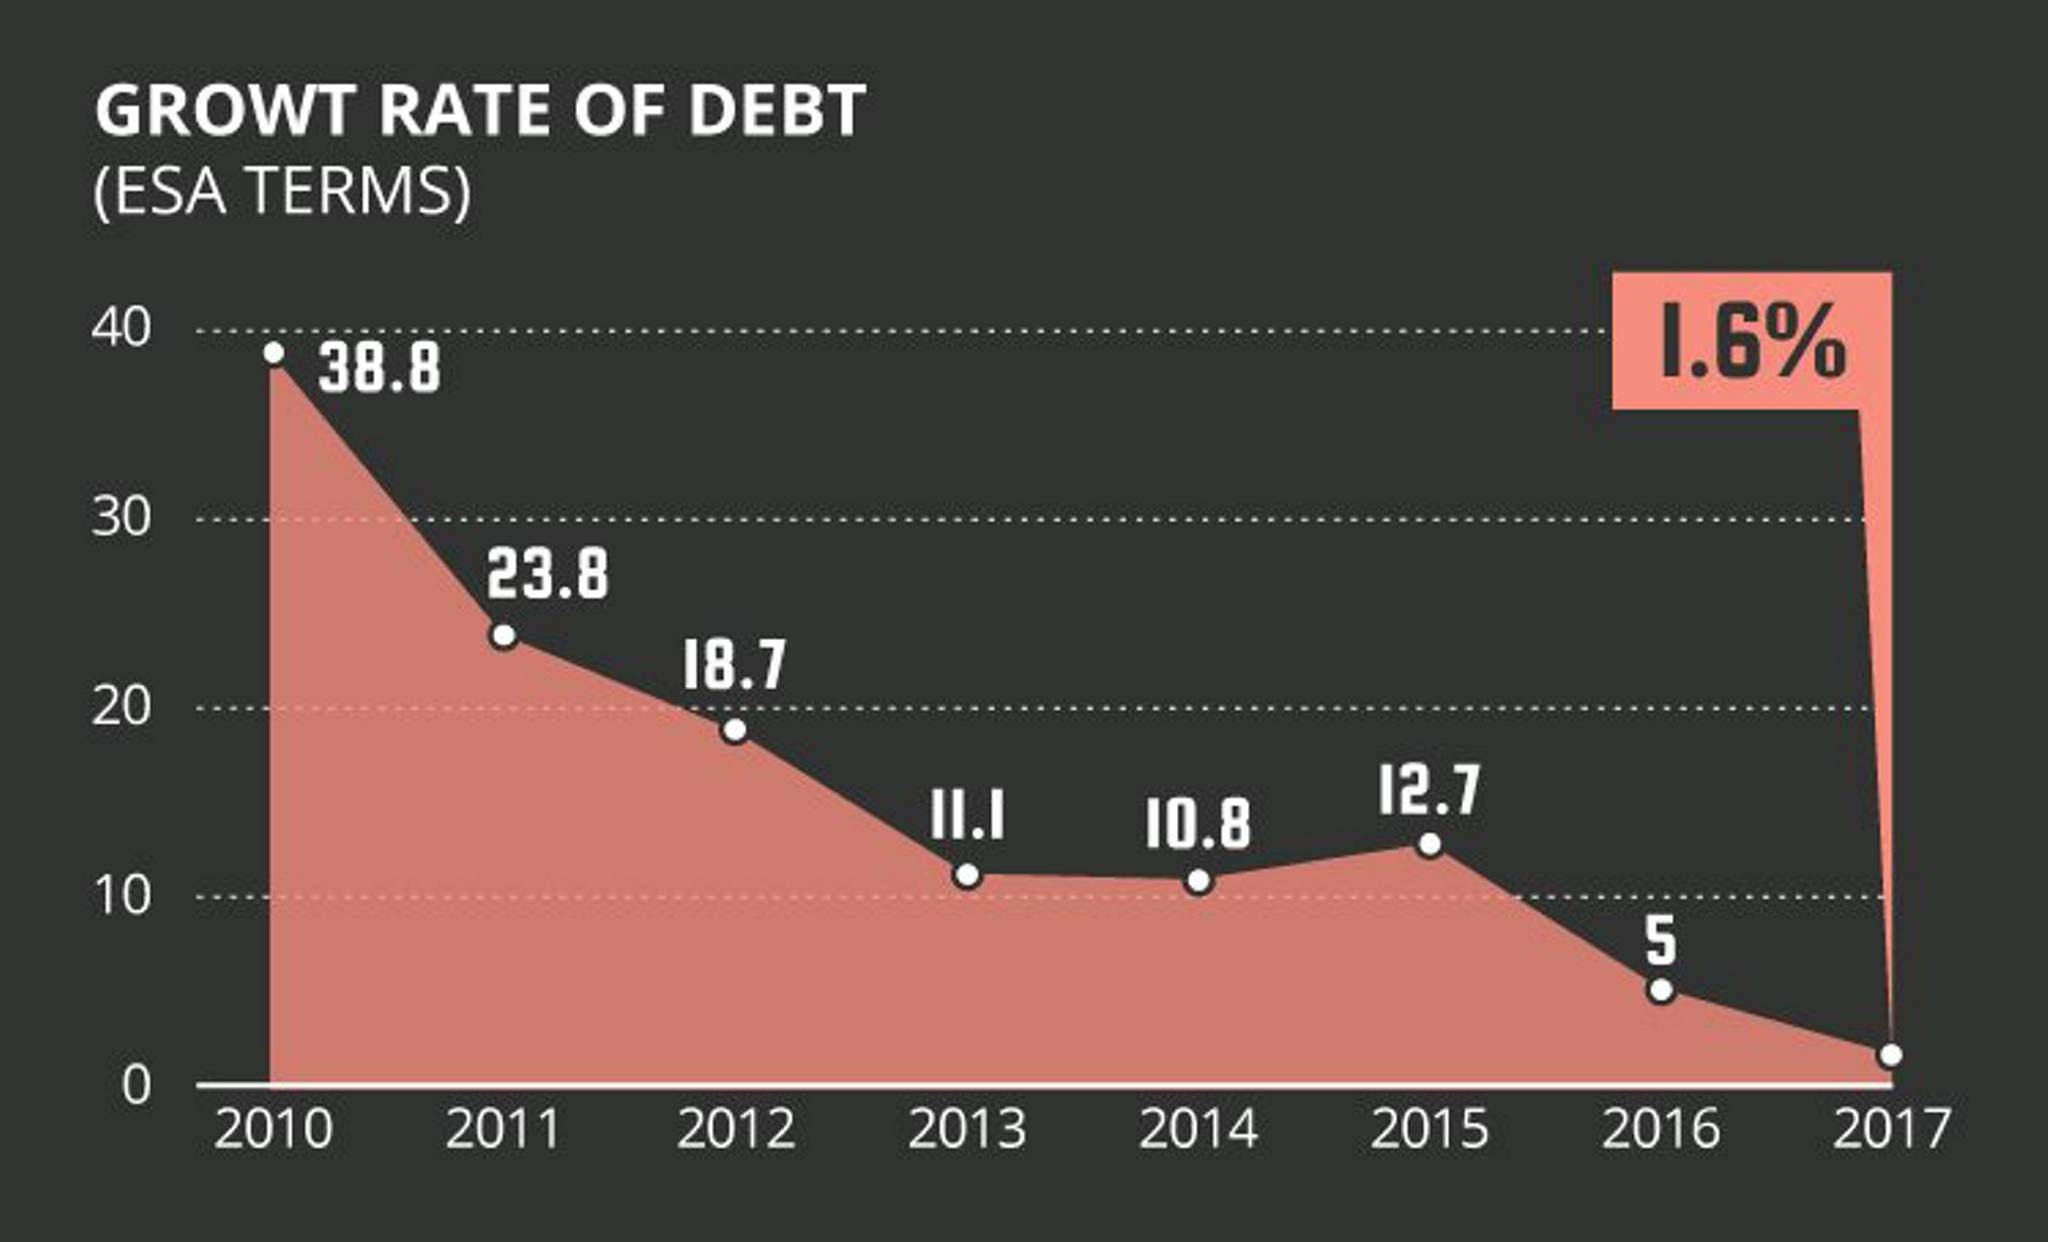 Debt growth rate